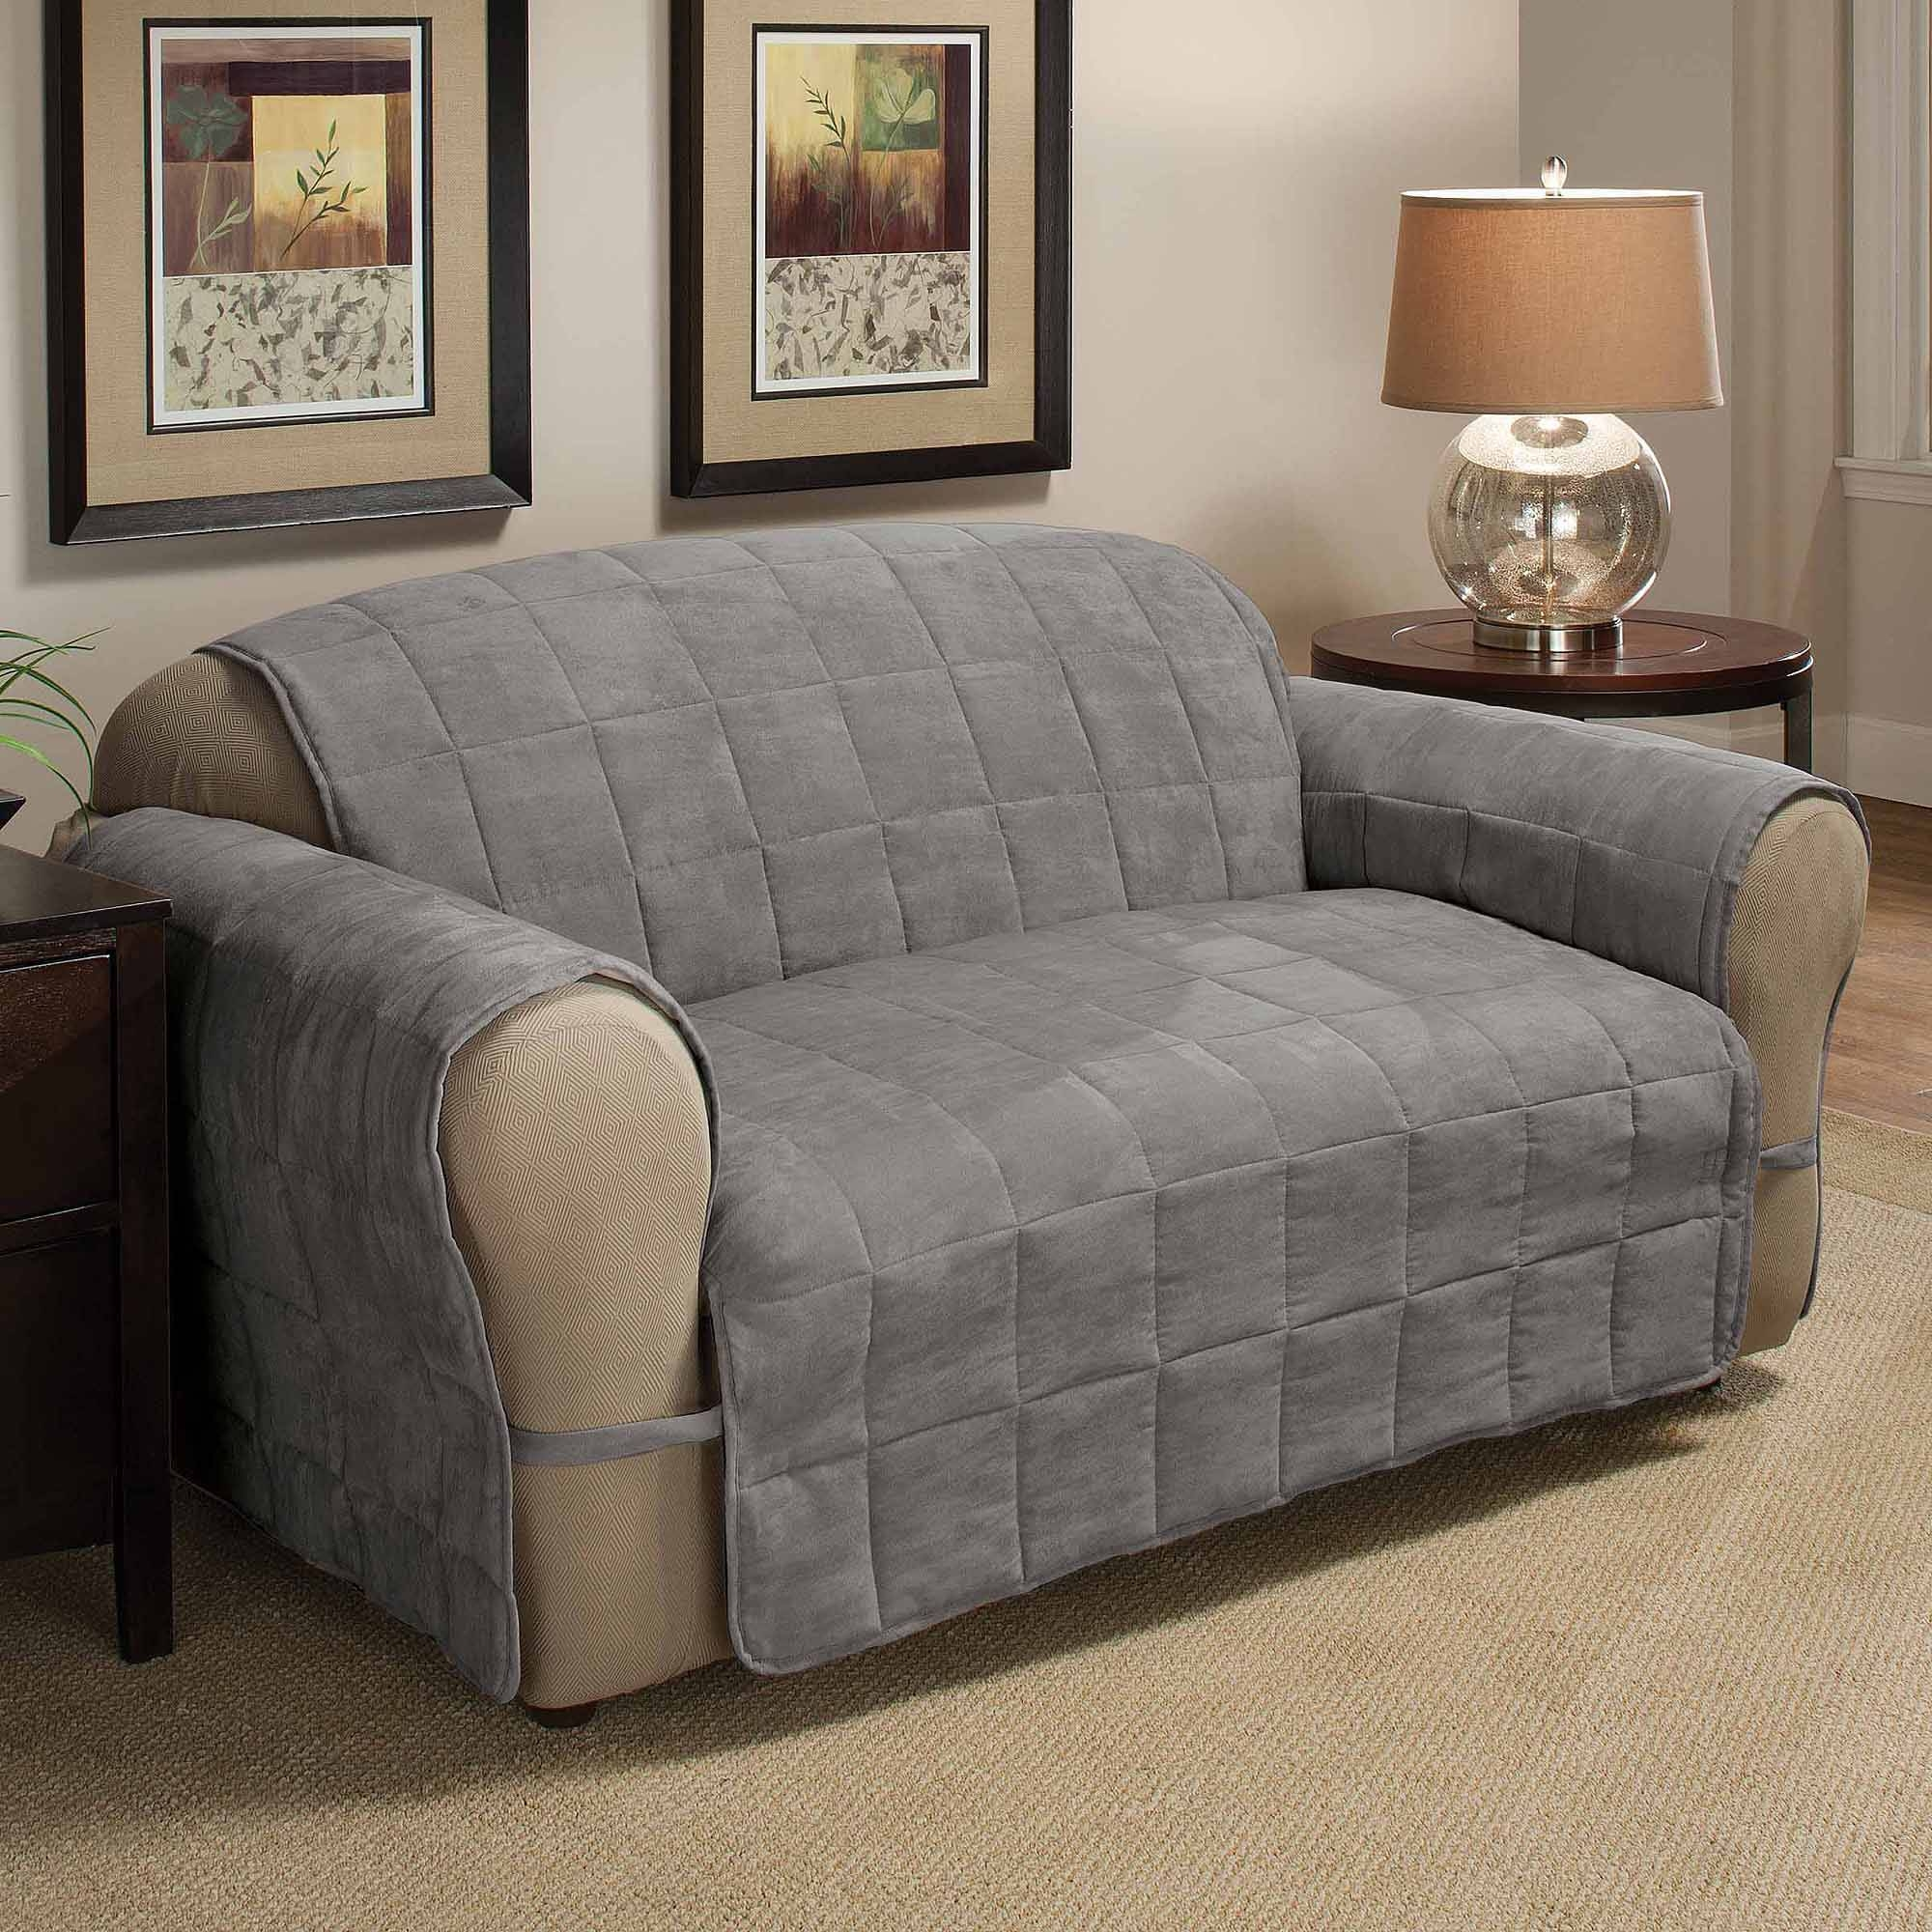 Loveseat Slipcovers Slipcovers - Walmart within Sofa Loveseat Slipcovers (Image 17 of 30)